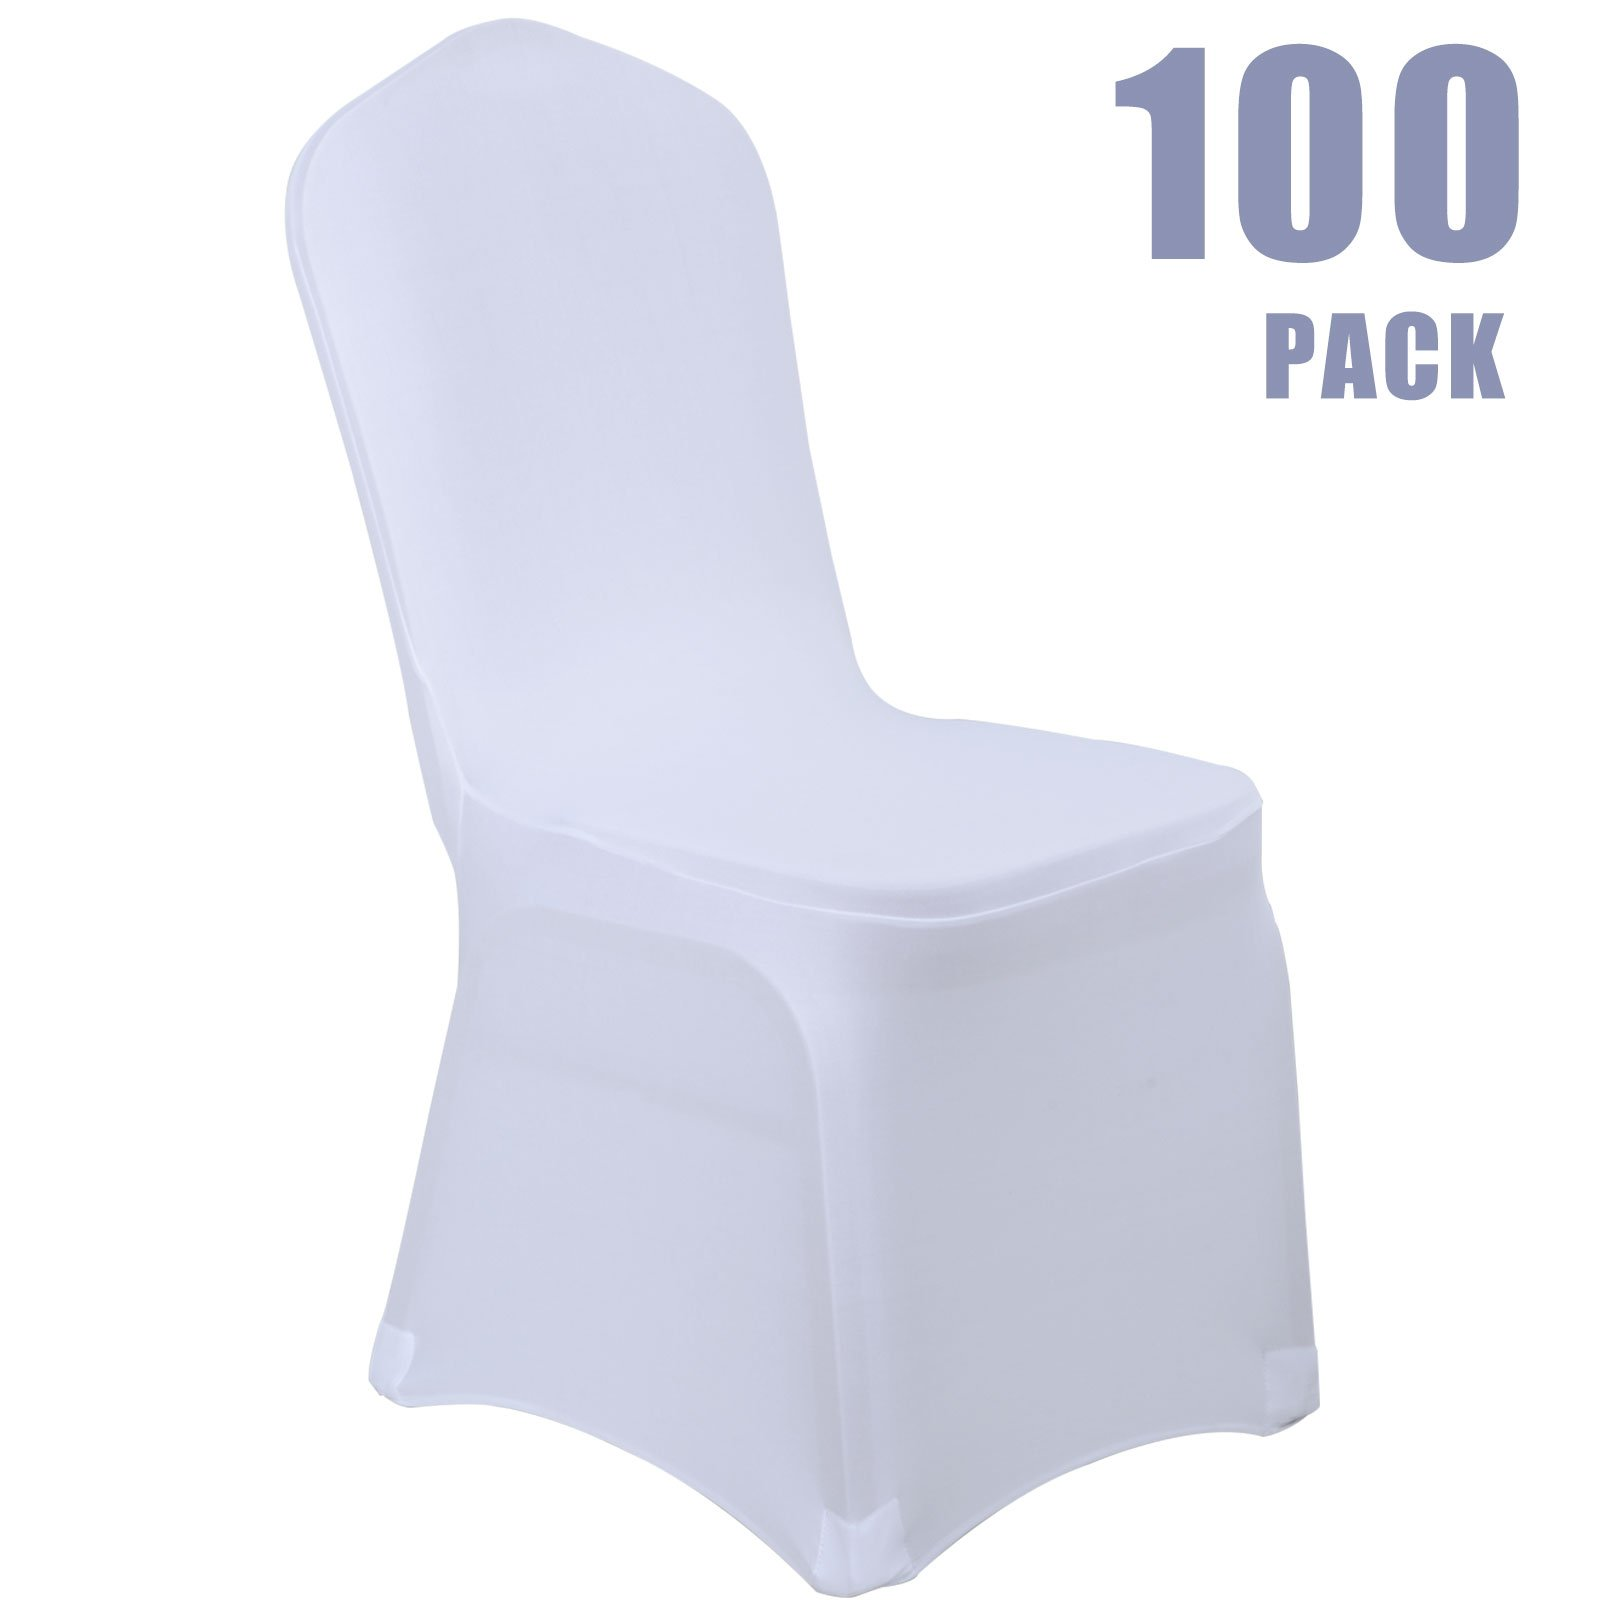 Voilamart Wedding Chair Covers Set of 100pcs Stretchable Polyester Spandex Chair Slipcover for Dinning Banquet Party Ceremony - White by Voilamart